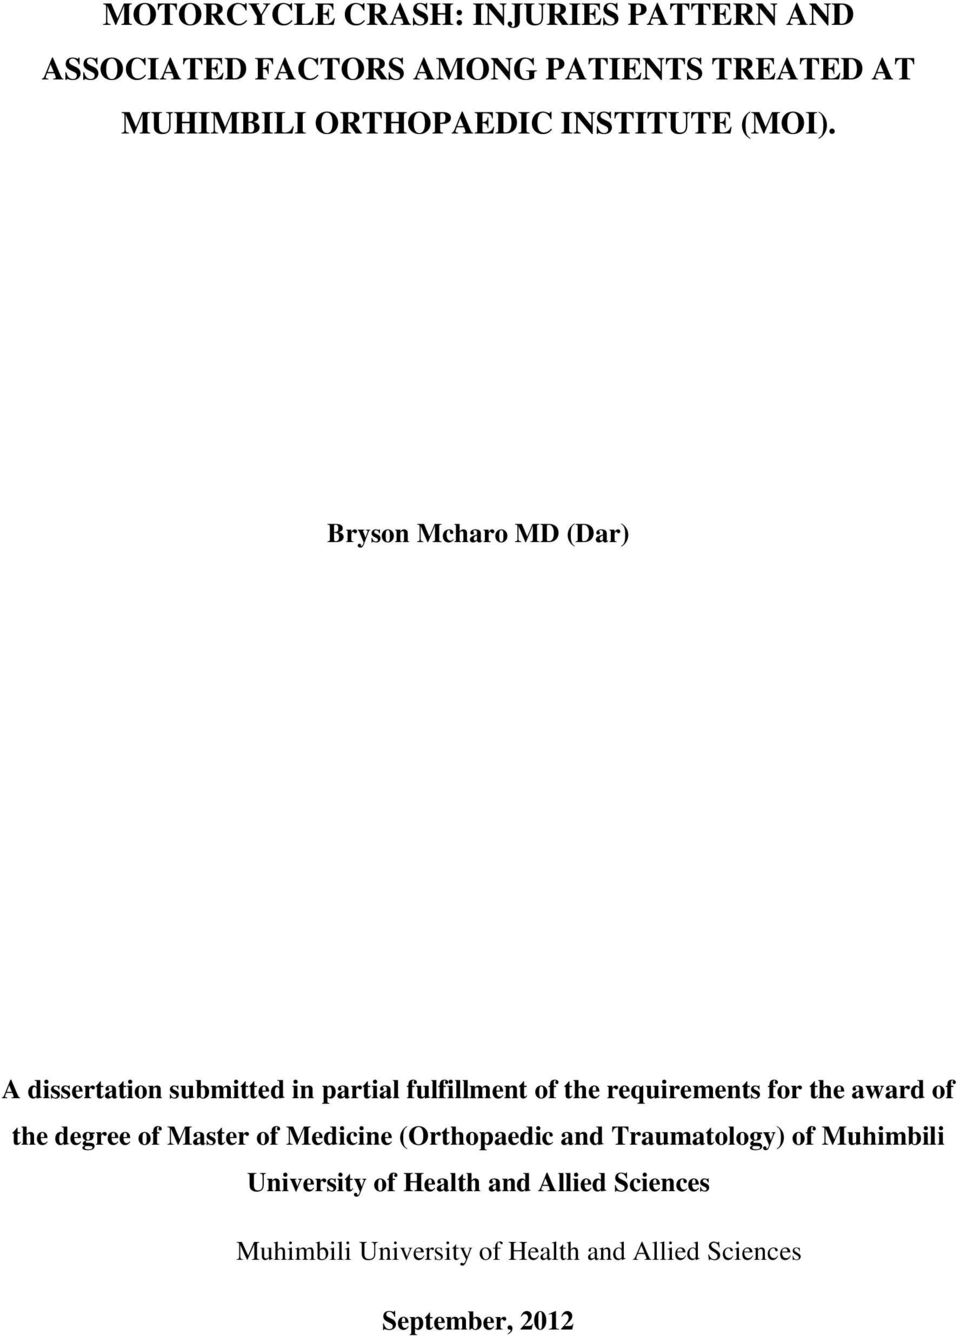 Bryson Mcharo MD (Dar) A dissertation submitted in partial fulfillment of the requirements for the